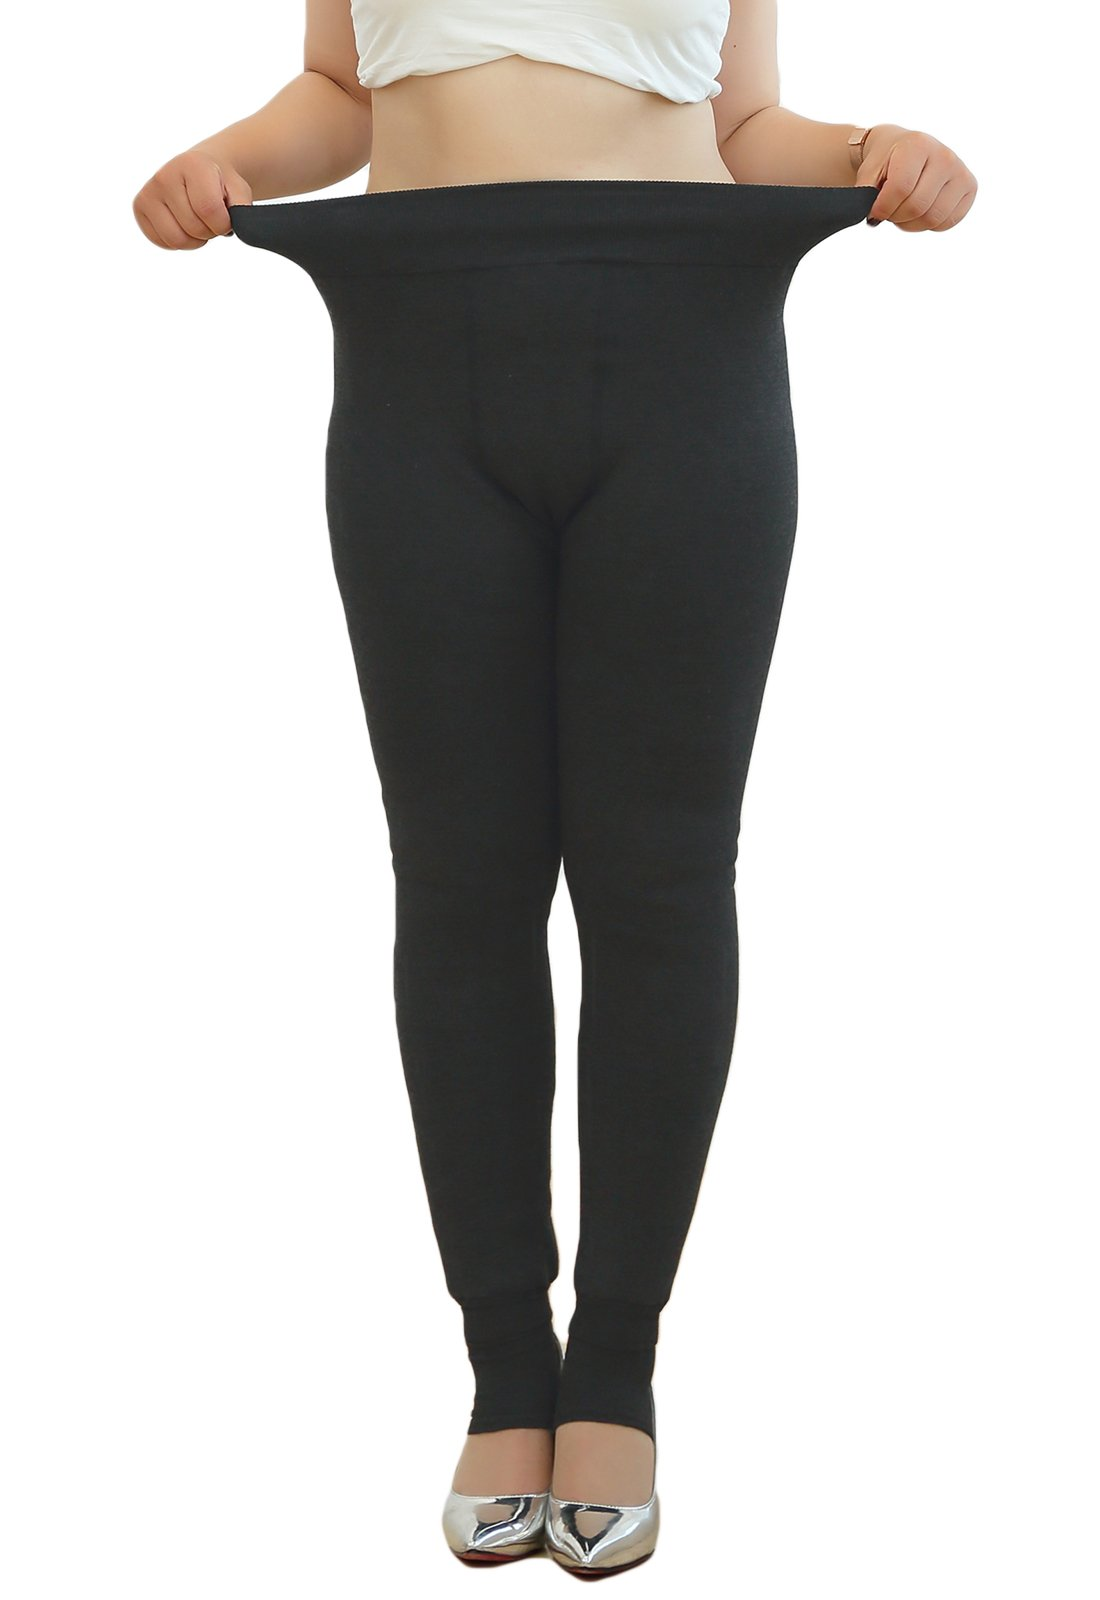 Womens Fleece Lined Thermal Leggings Winter Warm Thick Stirrupped Pants, Regular and Plus Size Black L(US Size 10-16)